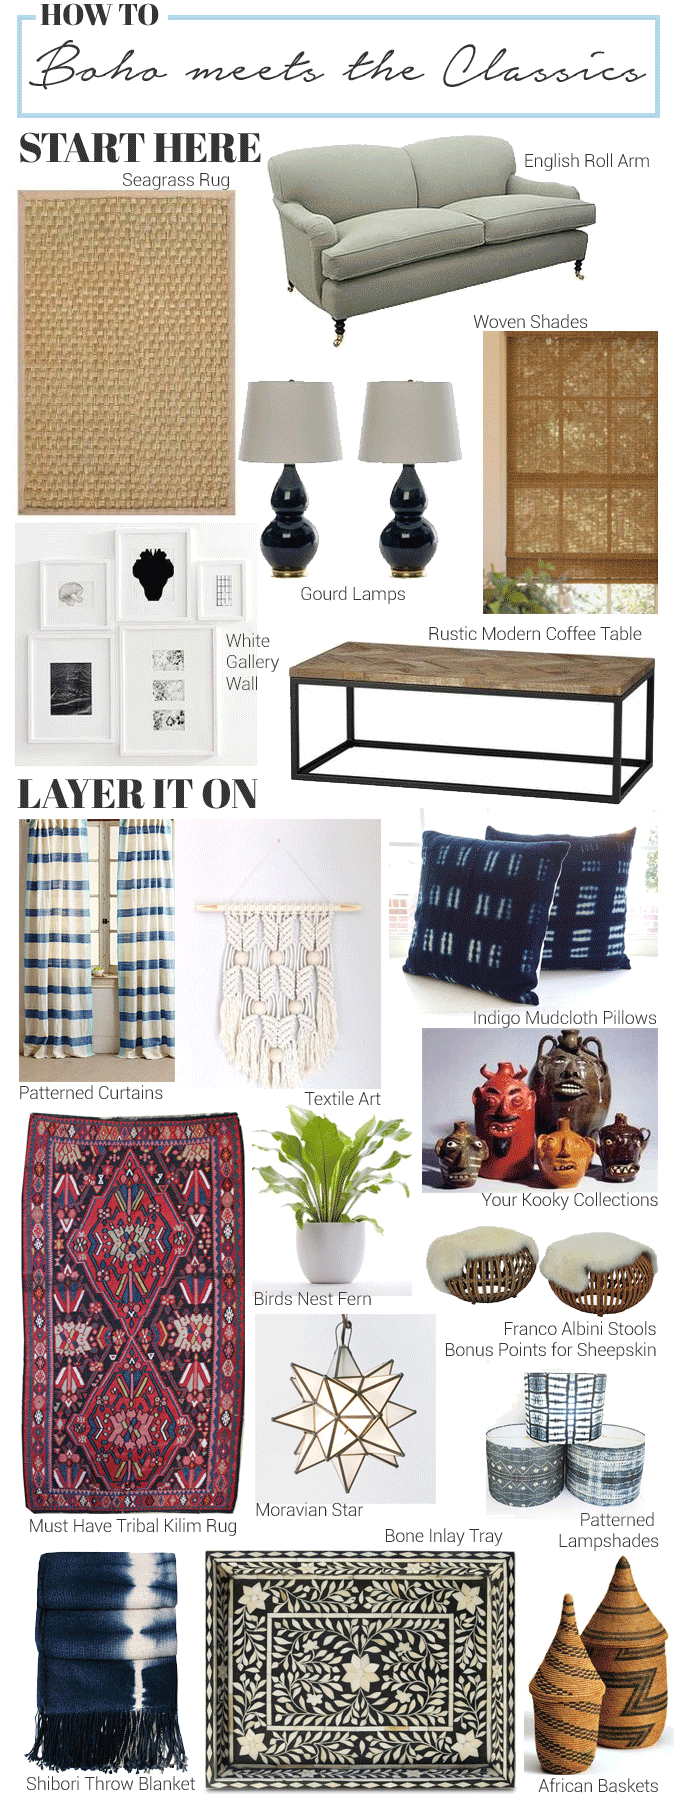 HOW-TO-boho-meets-the-classics-by-the-estate-of-things